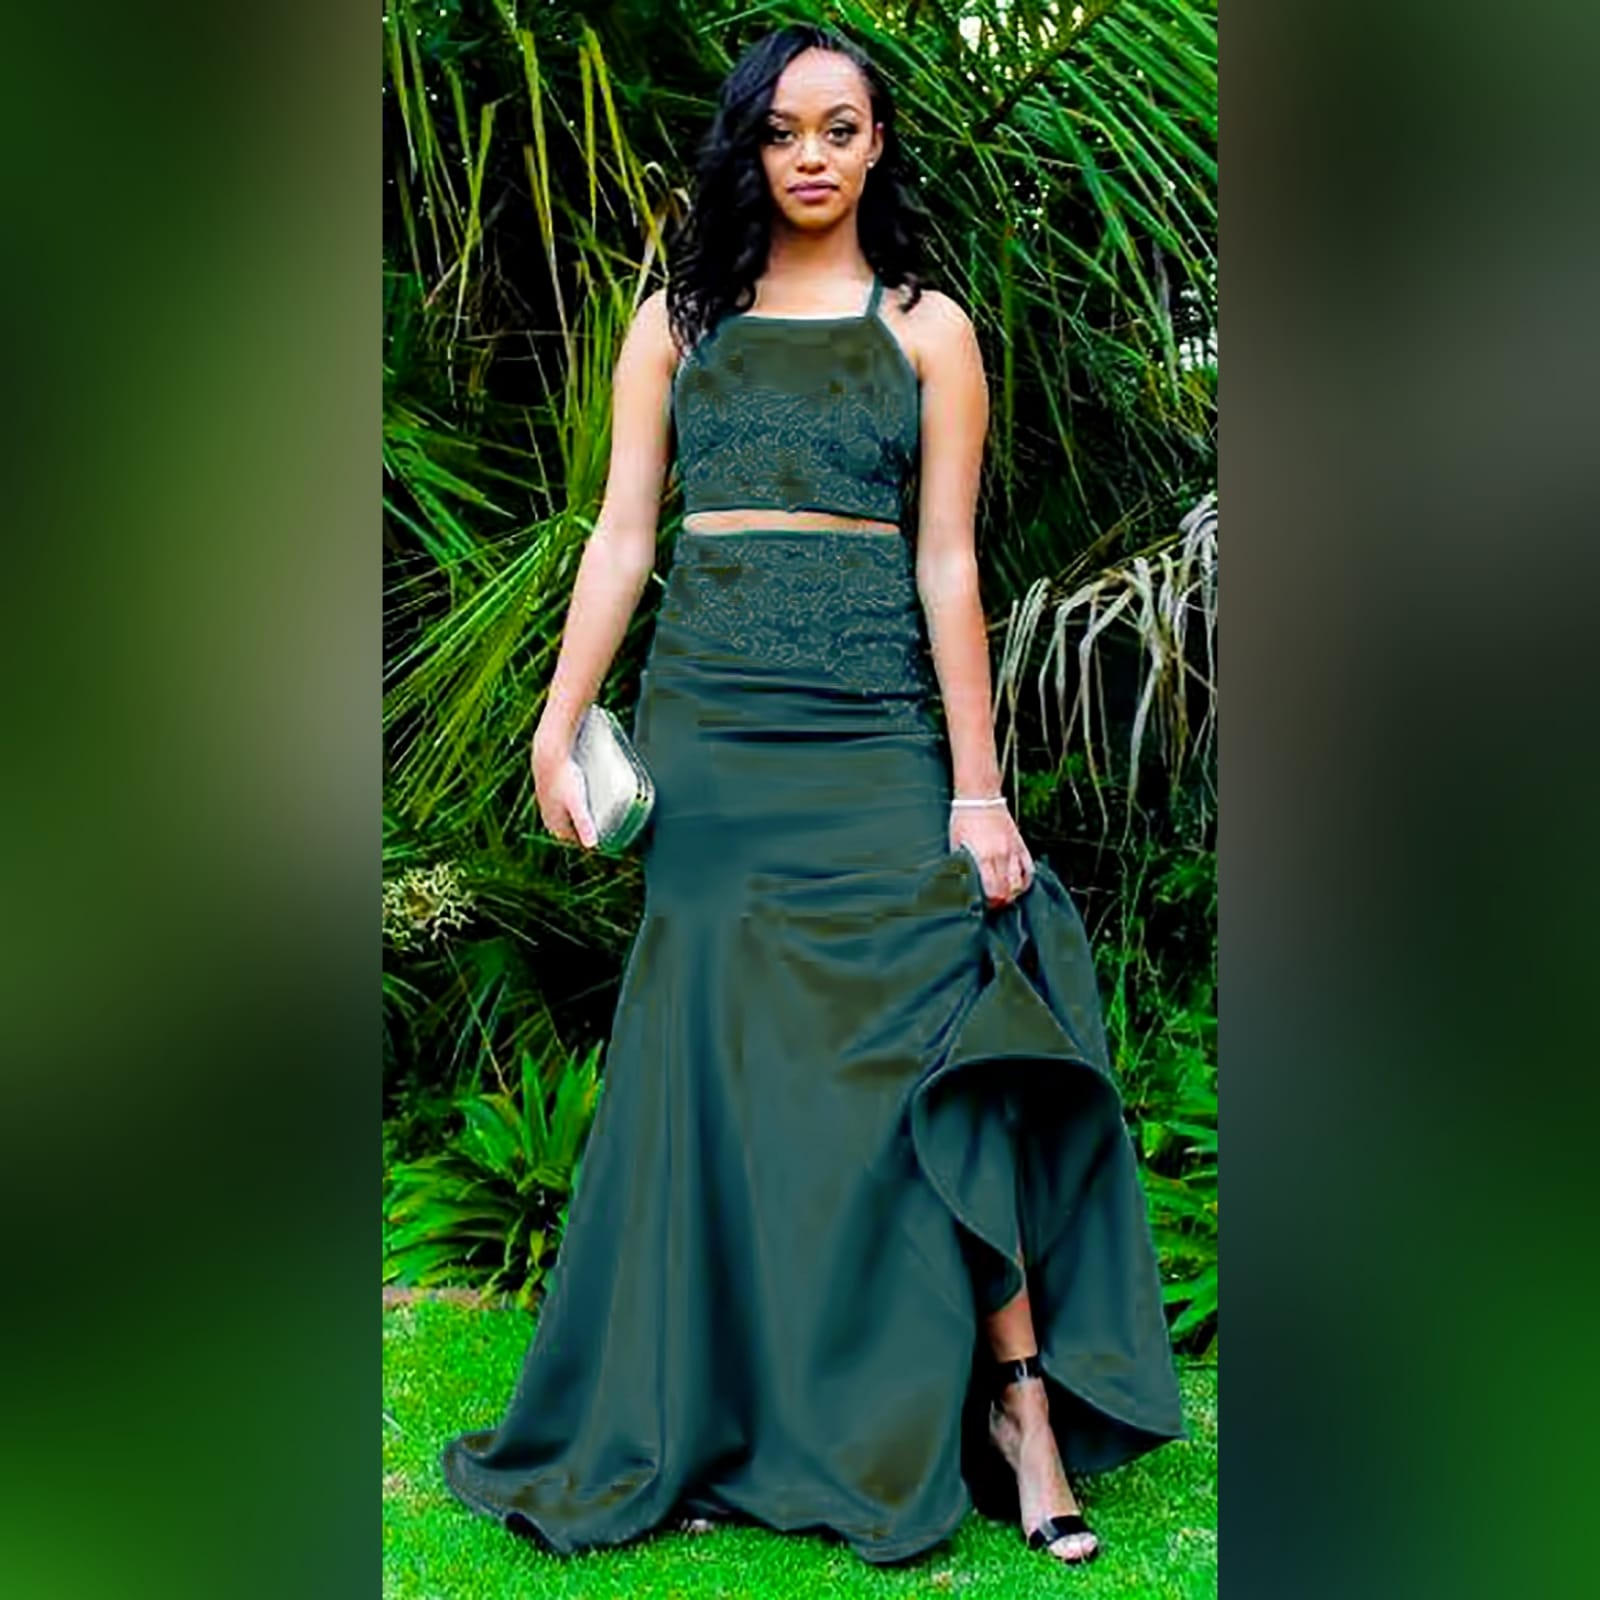 2 piece emerald green mermaid prom dress 2 2 piece emerald green mermaid prom dress. A gorgeous crop top with a lace-up open back, with a mermaid skirt. Lace detail on skirt and top for a classic touch.